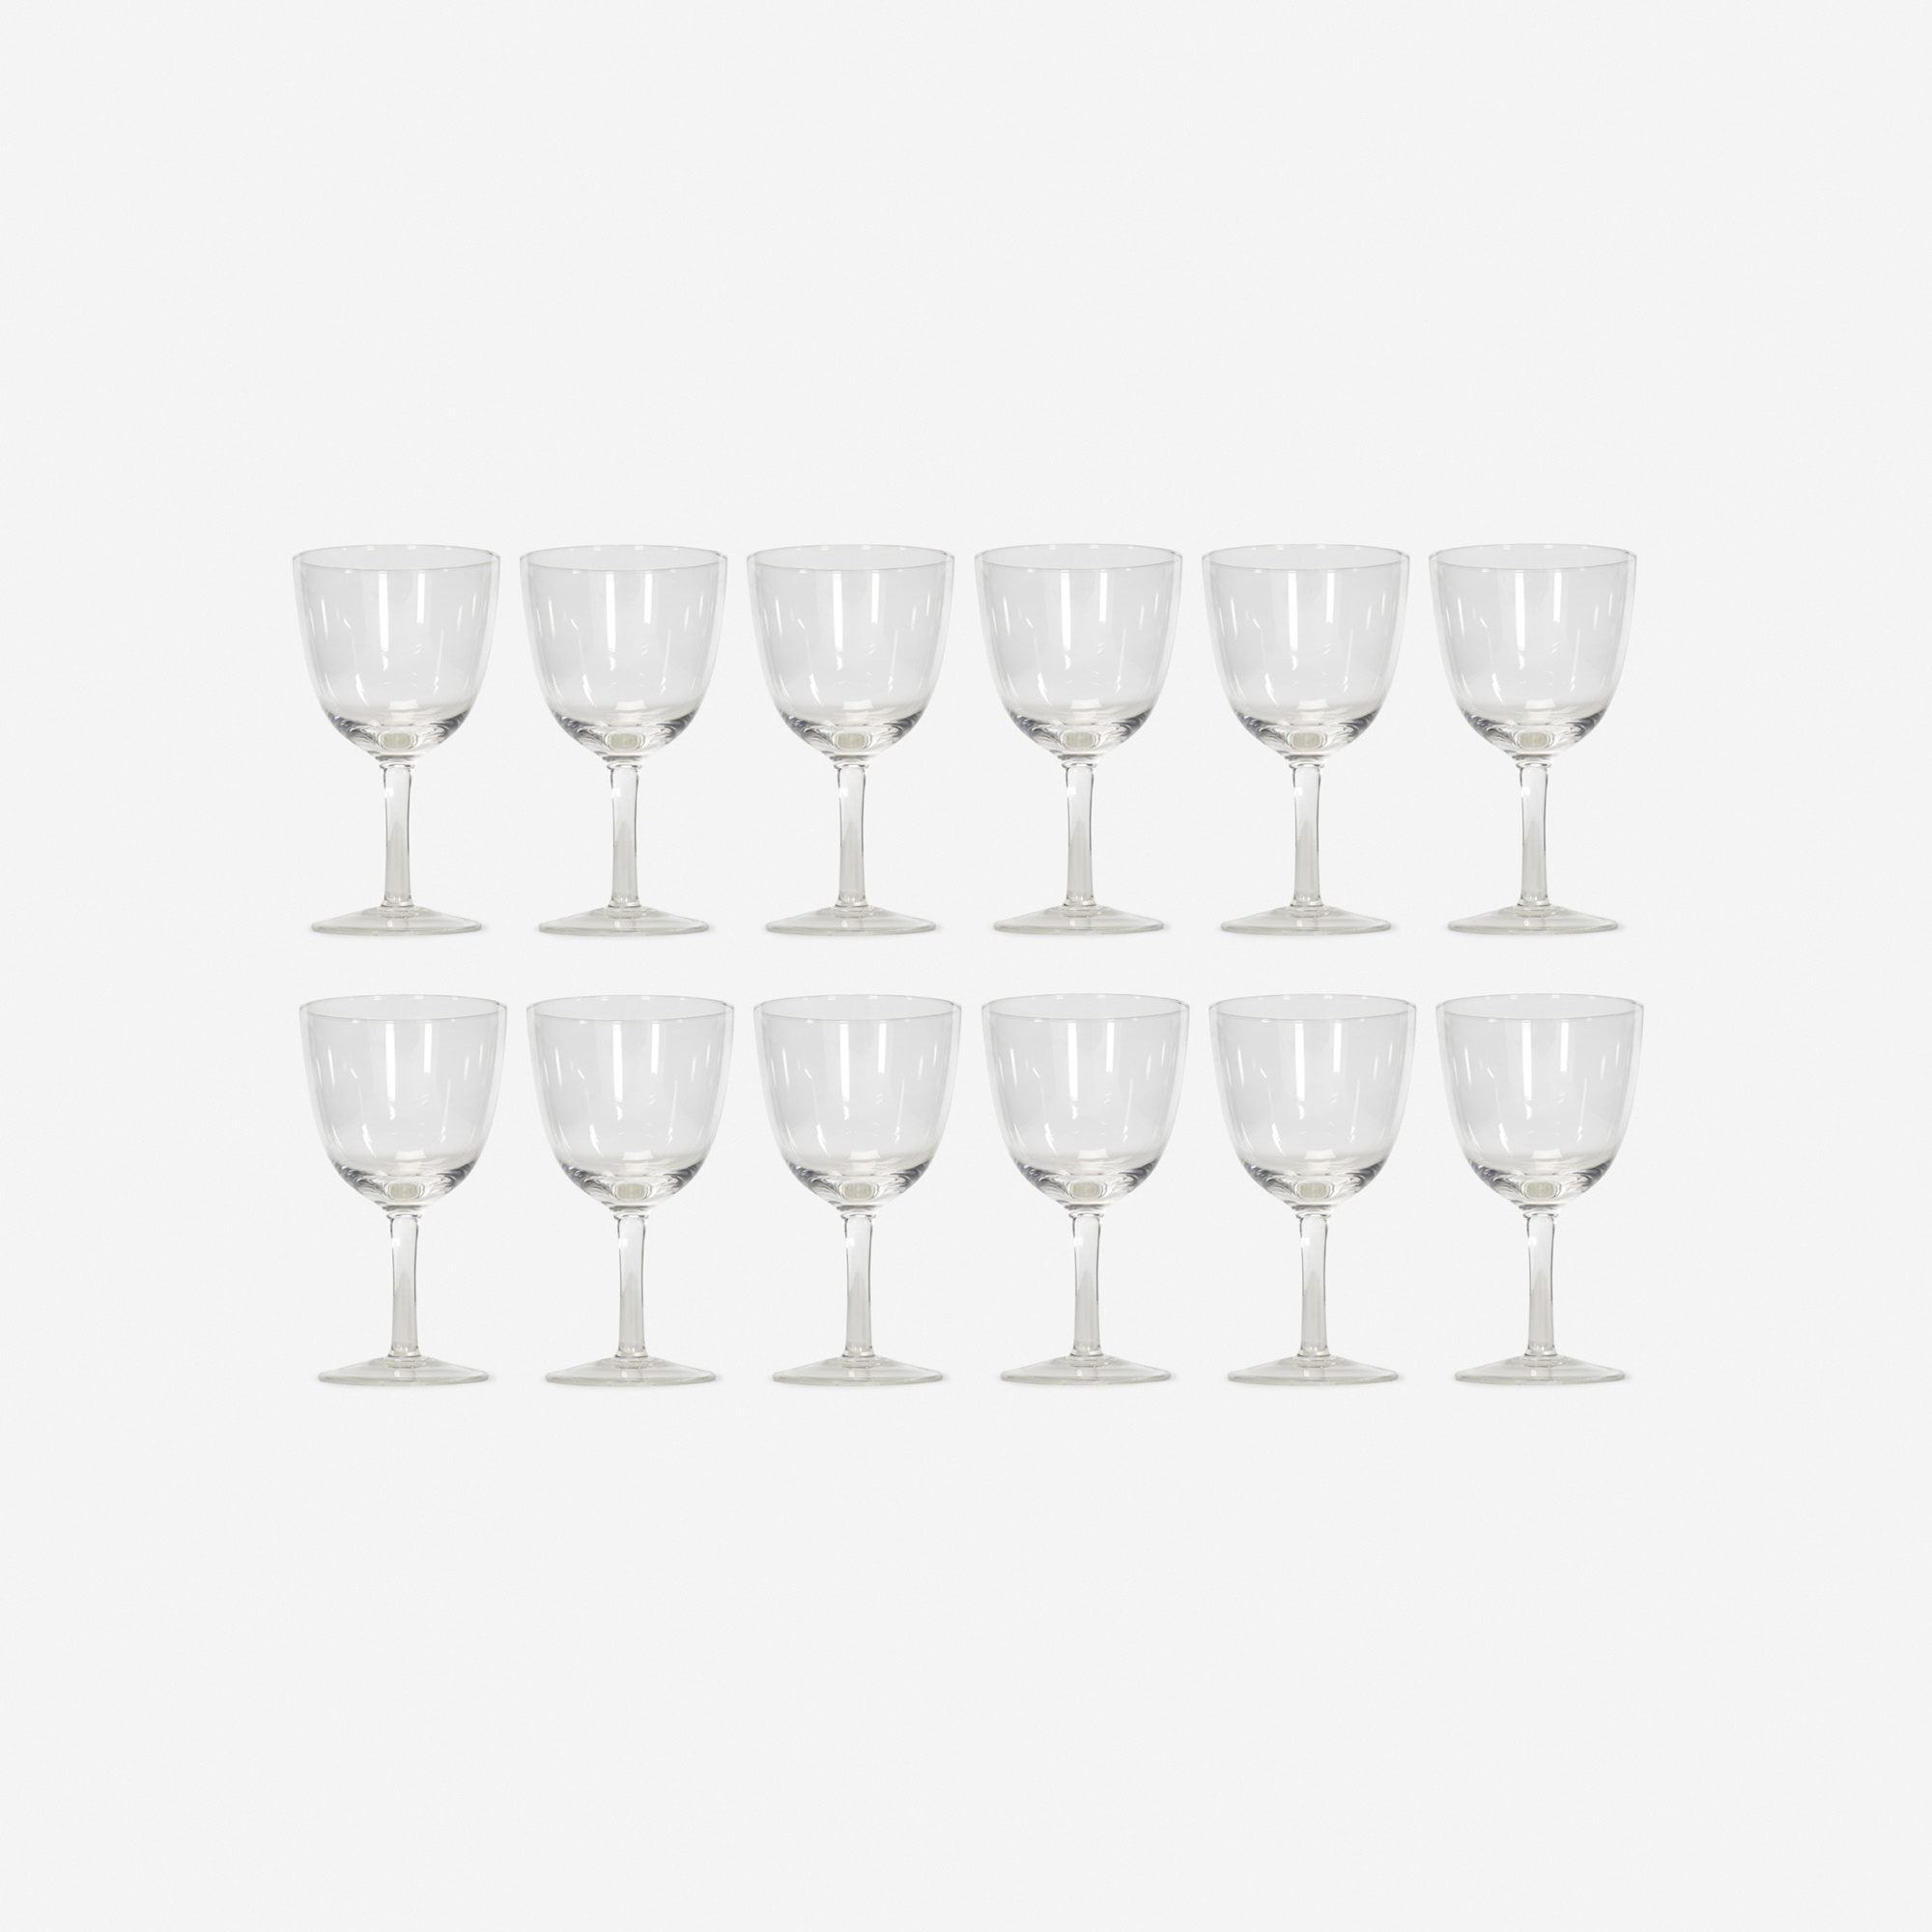 814: Garth and Ada Louise Huxtable / Water glasses from The Four Seasons, set of twelve (1 of 1)